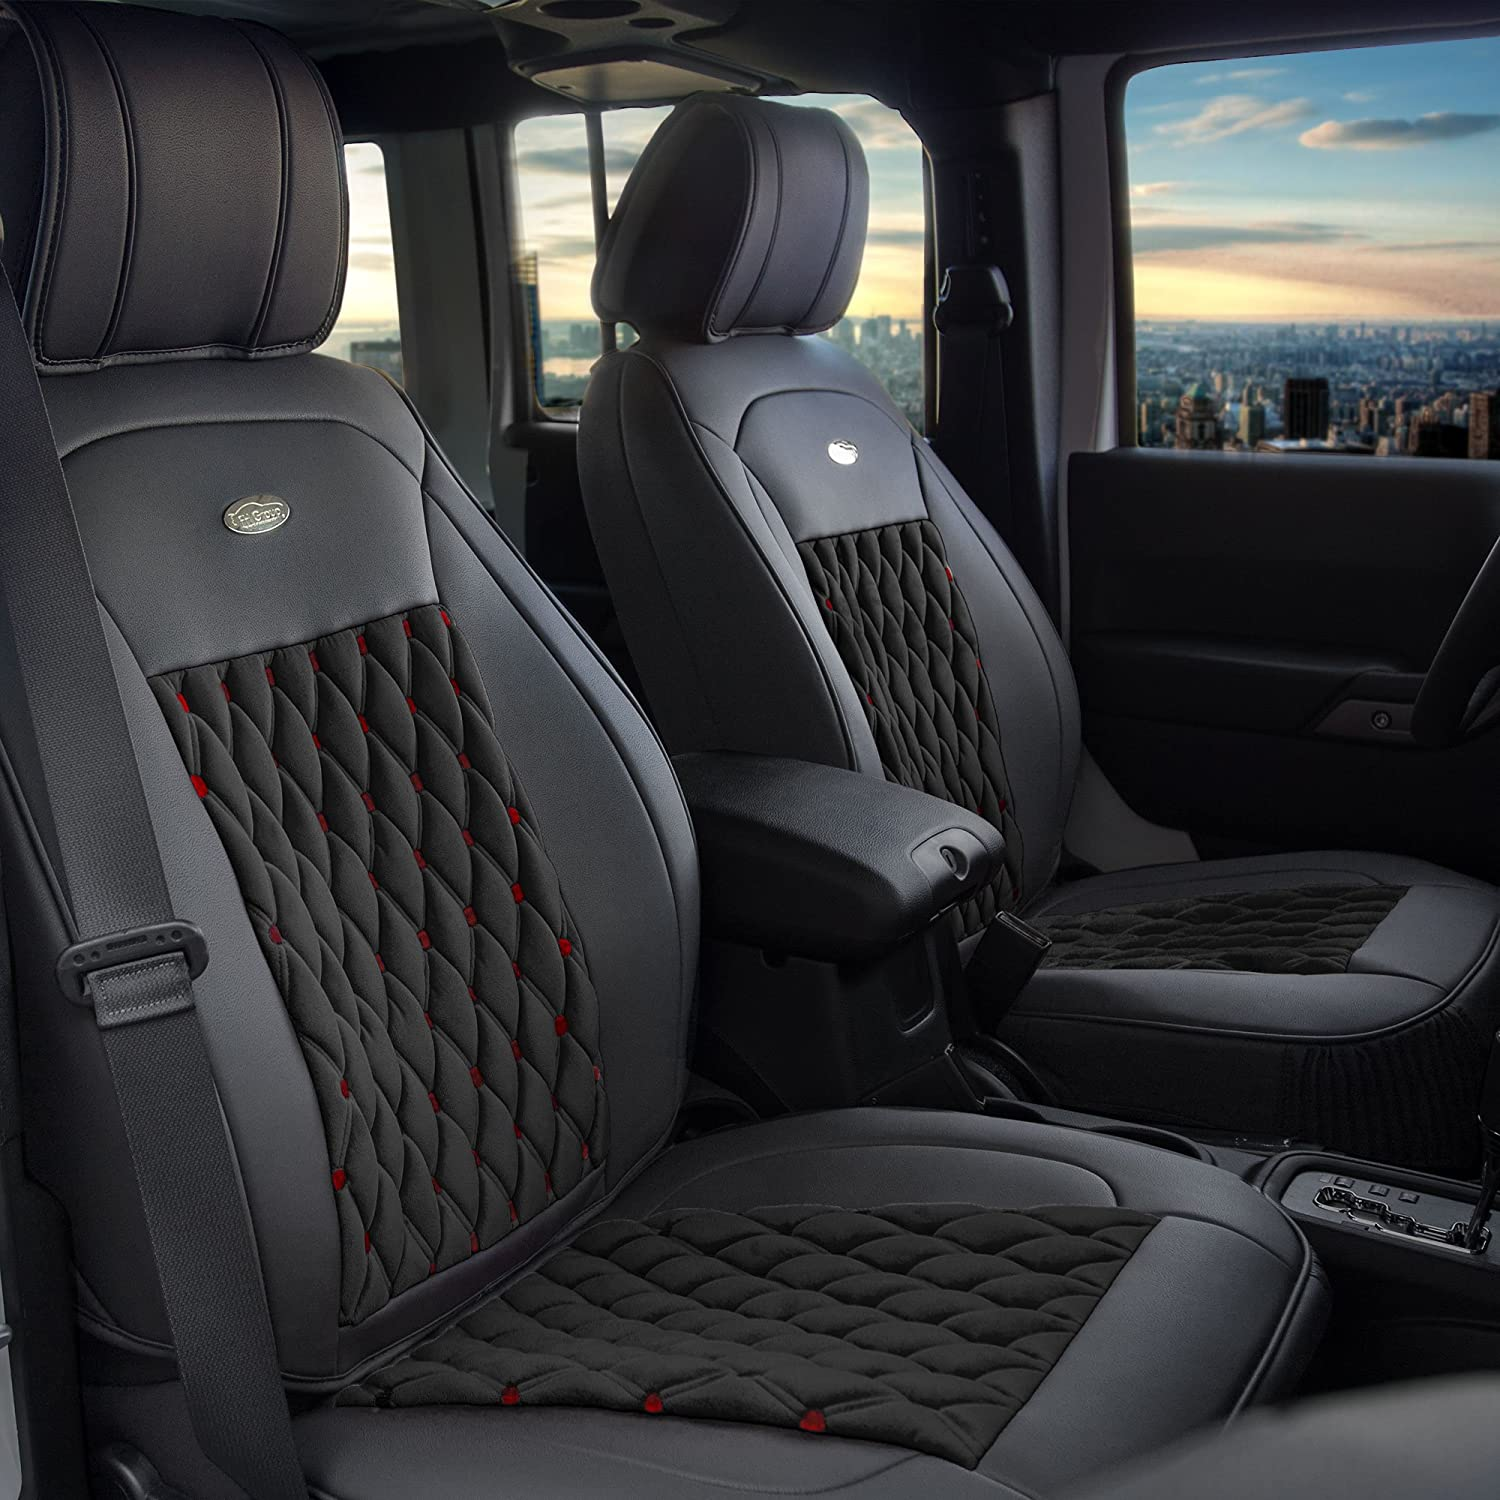 FH Group PU205SOLIDBLACK102 Solid Black Ultra Comfort Leatherette Front Seat Cushion Airbag Compatible